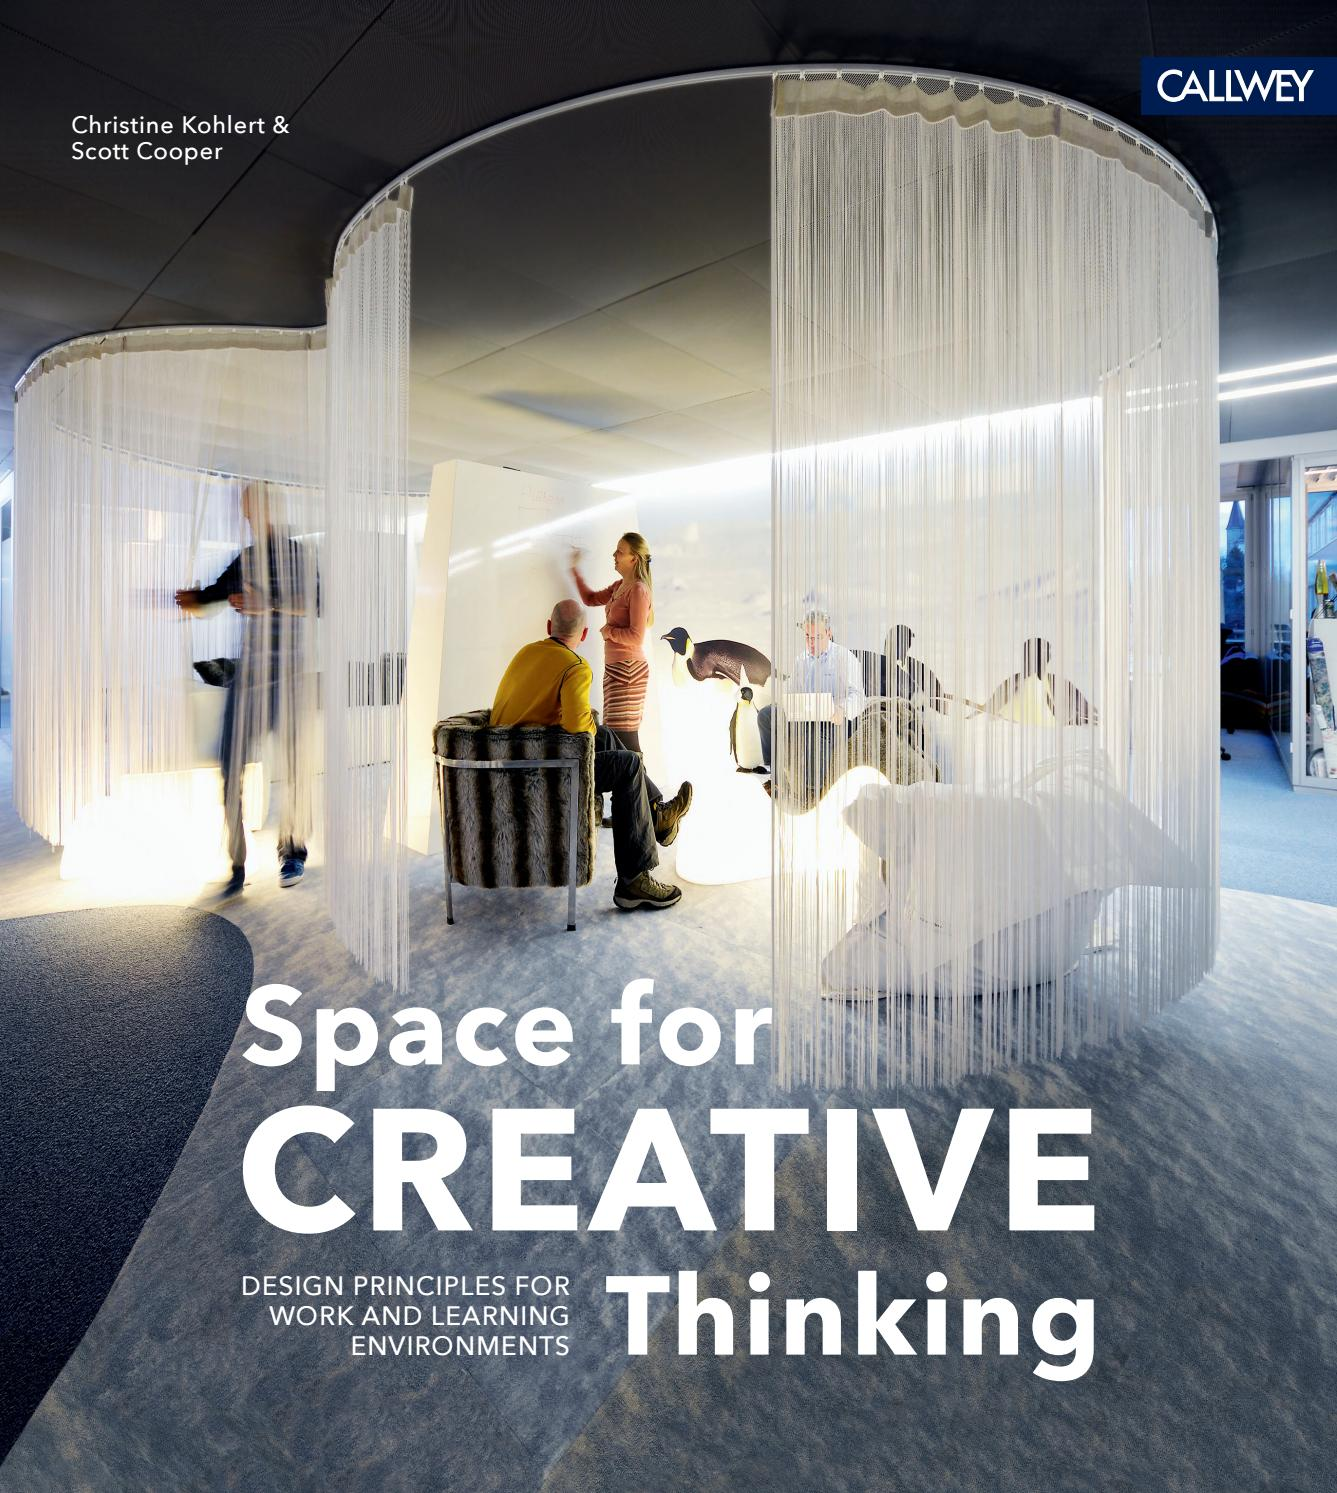 Space For Creative Thinking By Georg D.W. Callwey GmbH